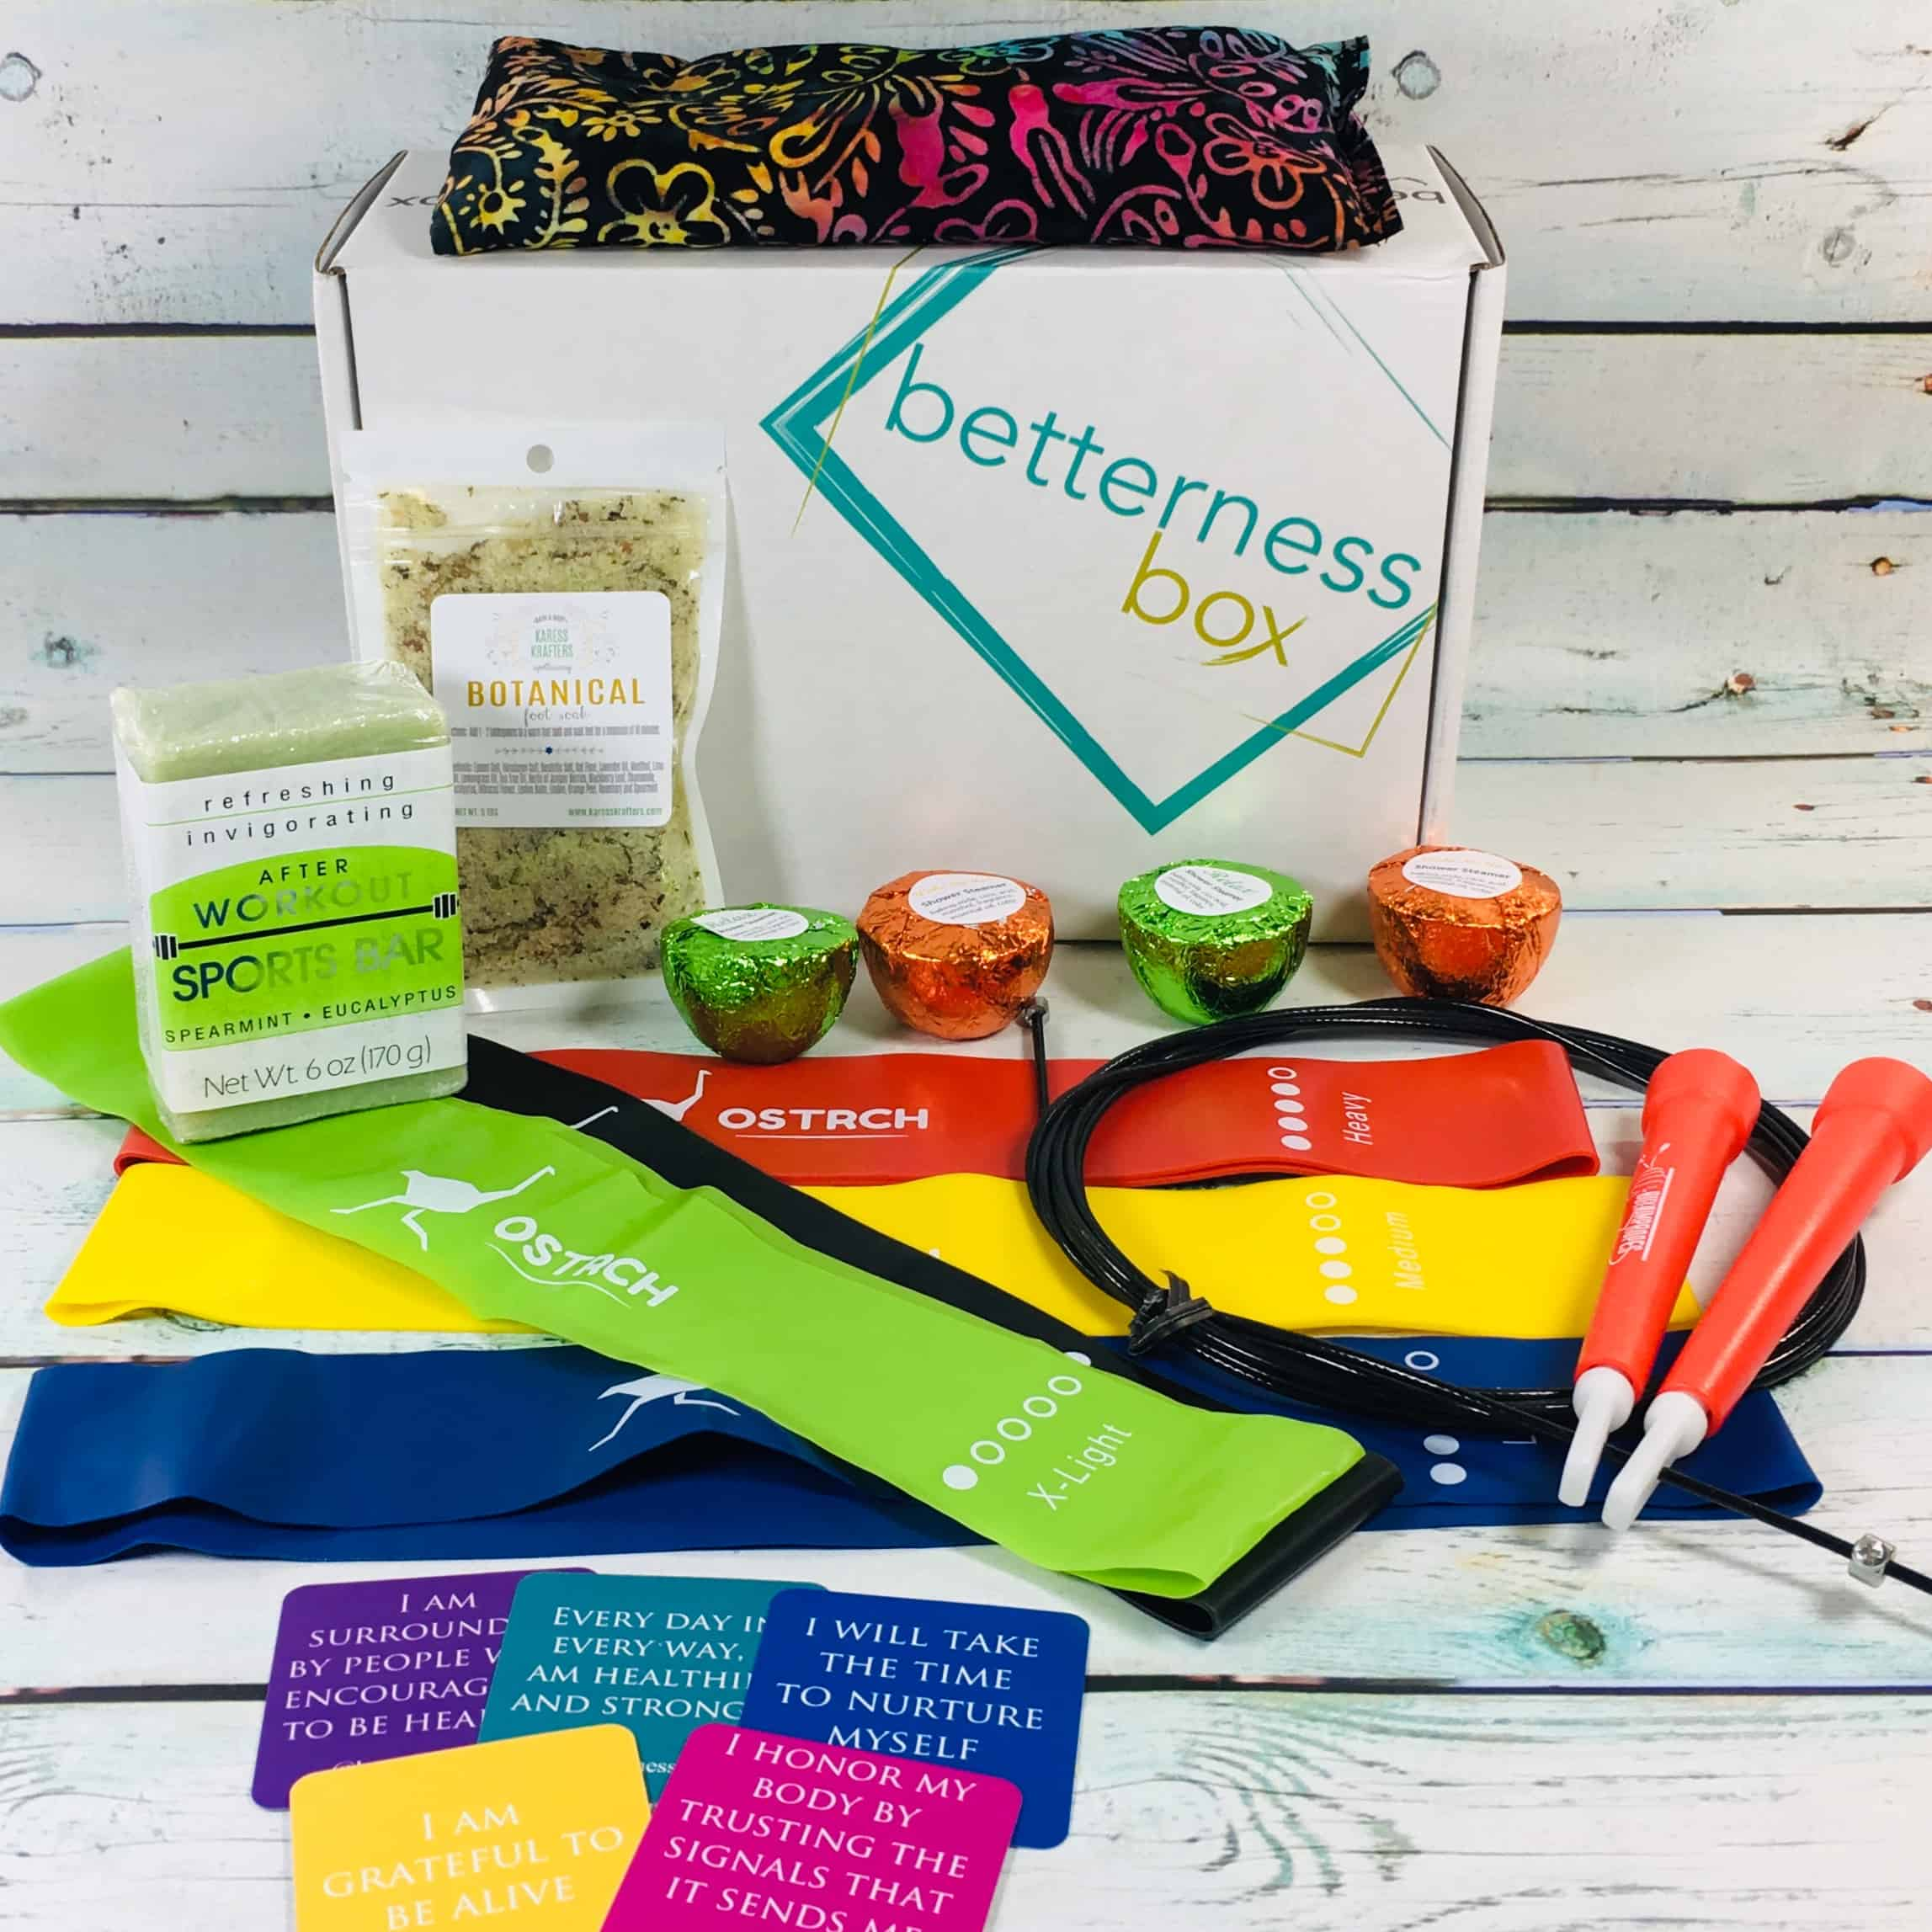 BetternessBox September 2018 Subscription Box Review